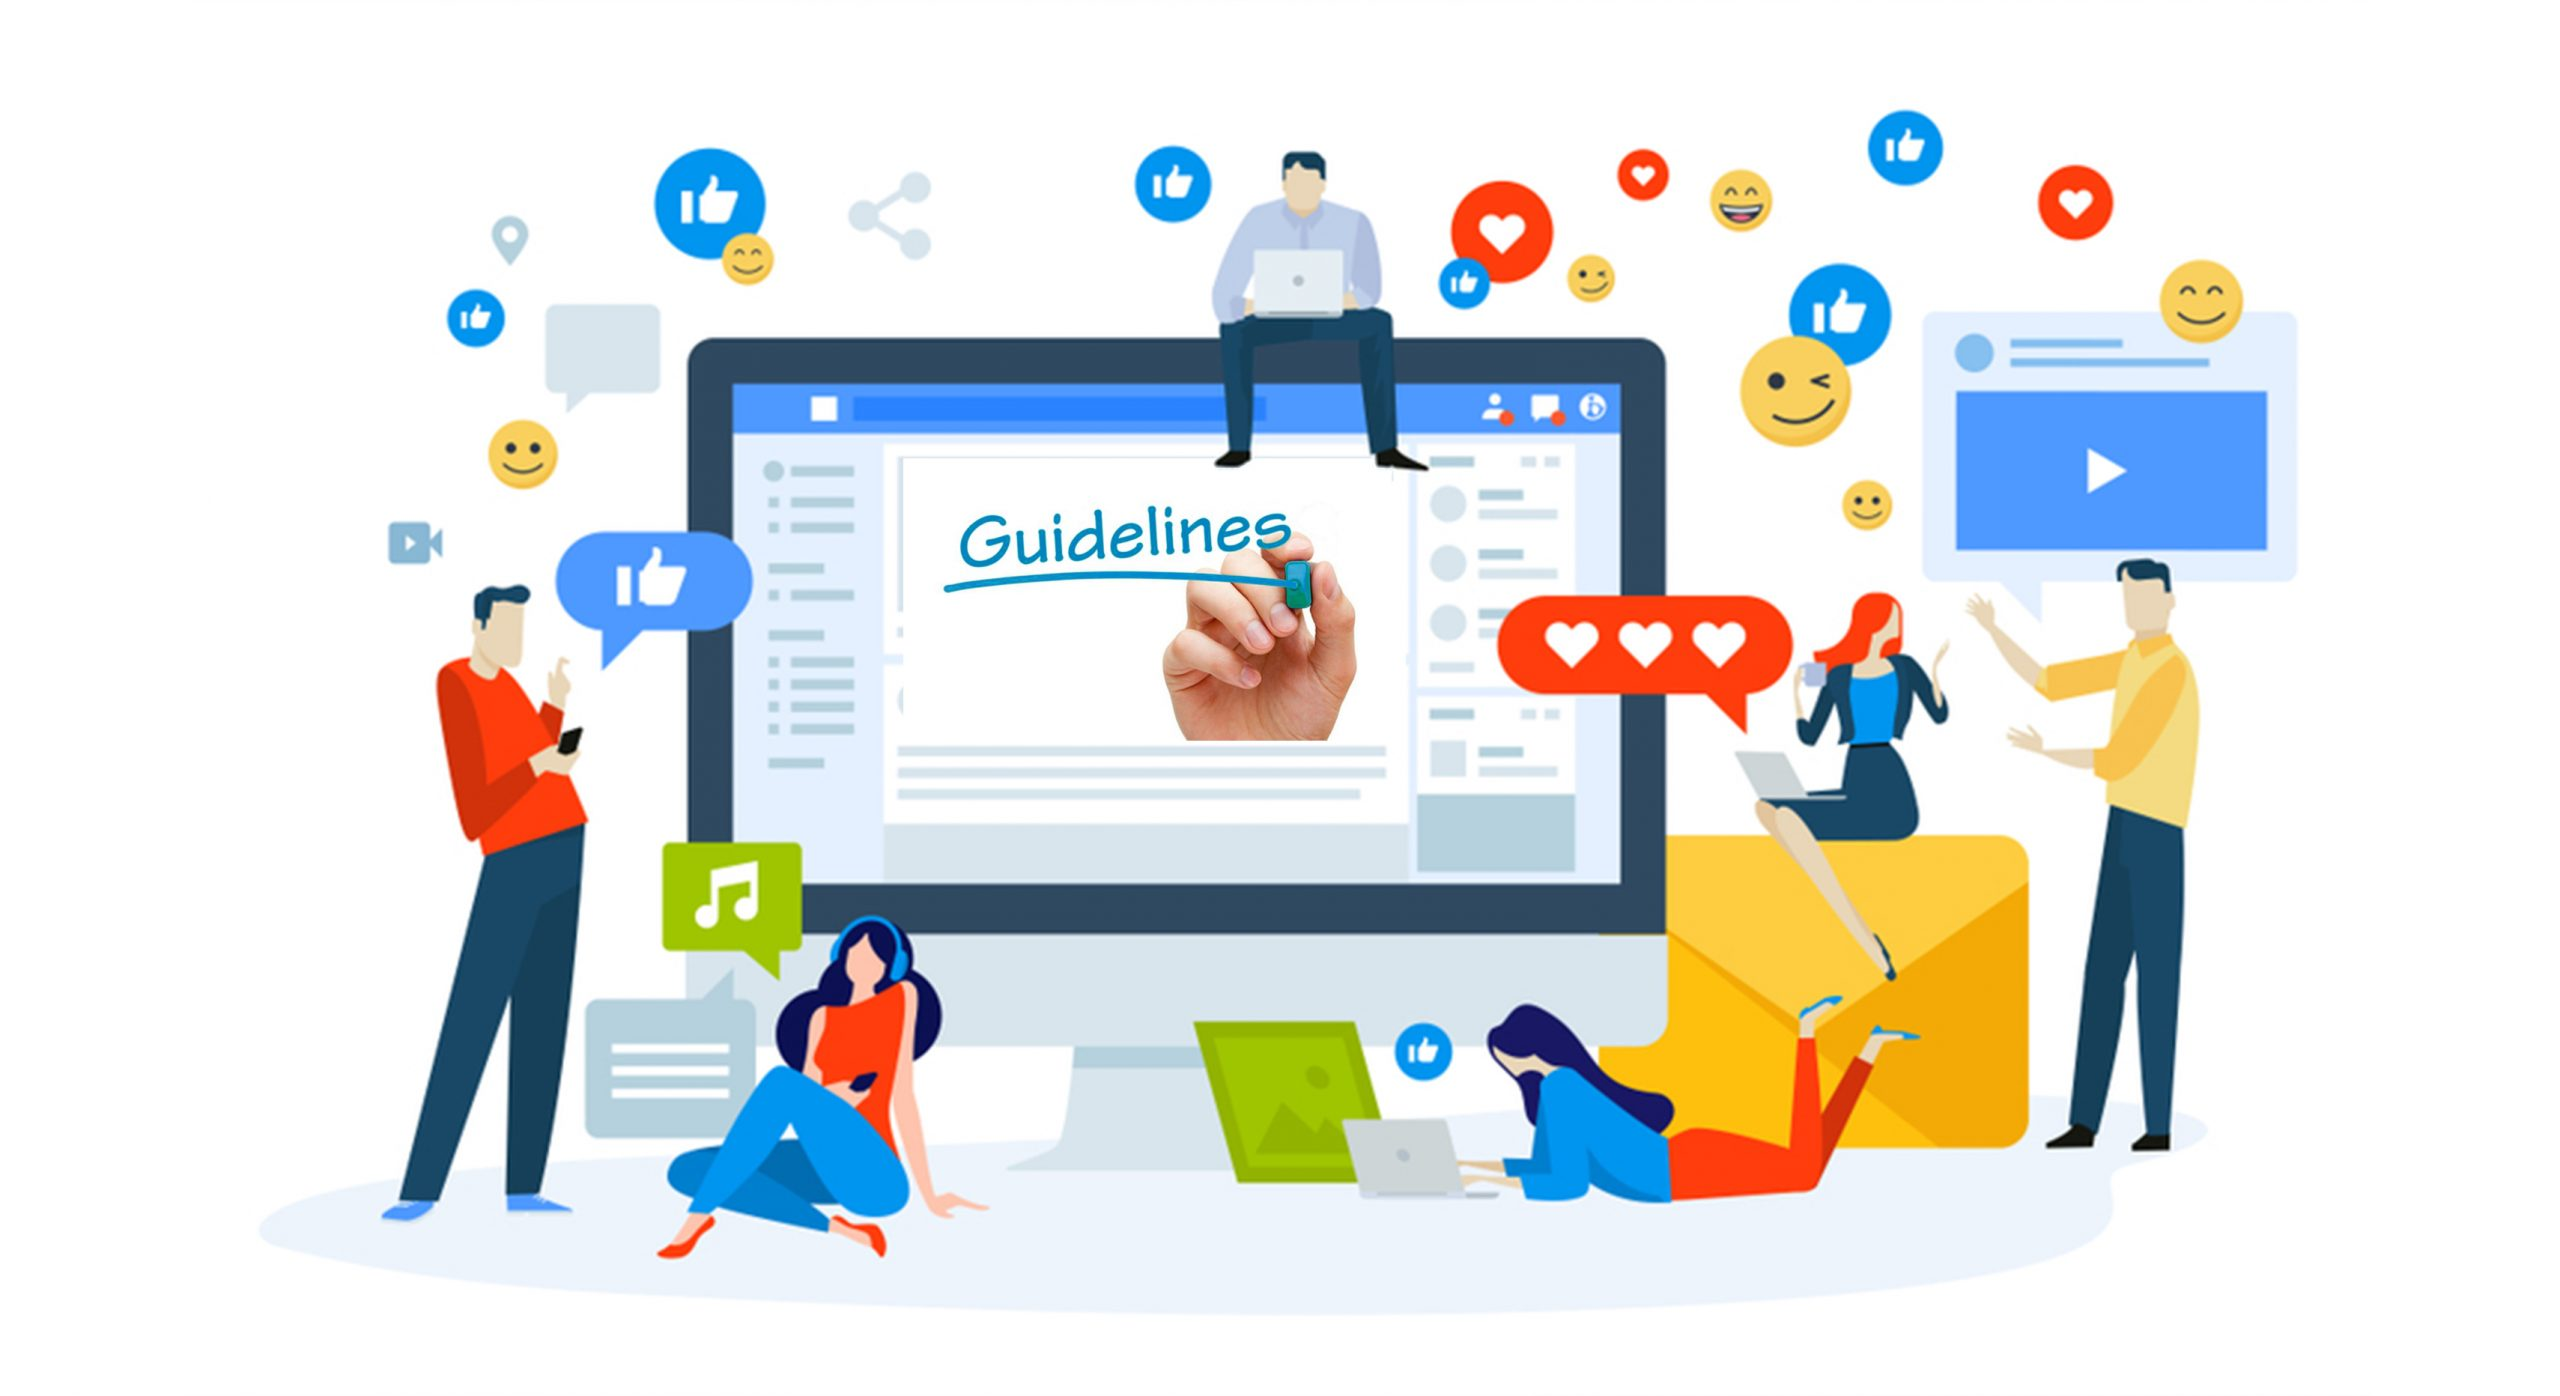 Guideline to setup Social Media for Business